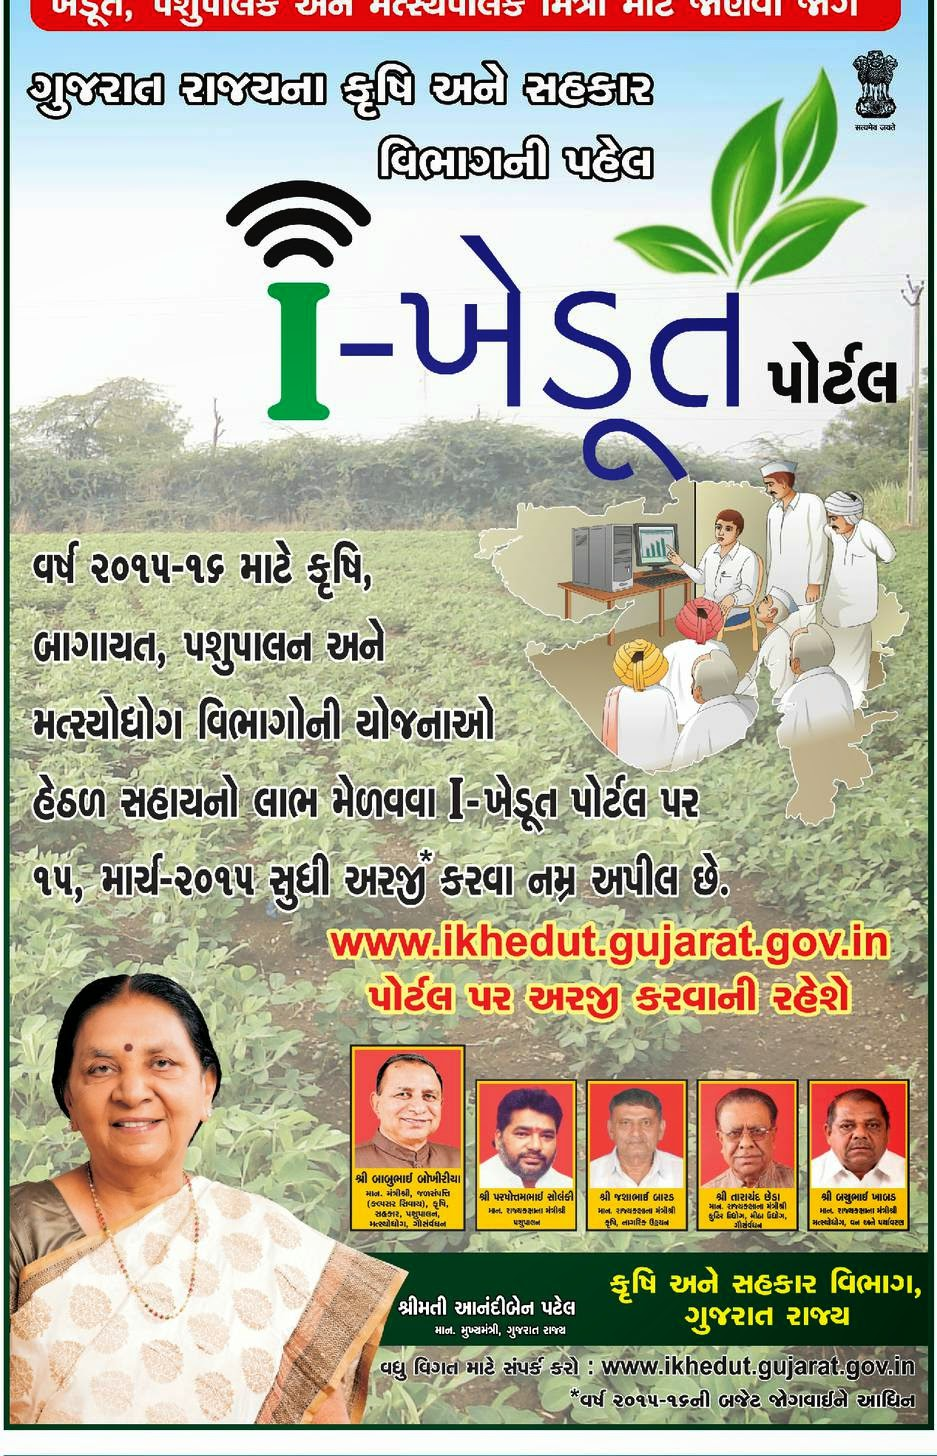 Online Registration for Sahay Yojna / Schemes | ikhedut.gujarat.gov.in, ikisan.gujarat.gov.in